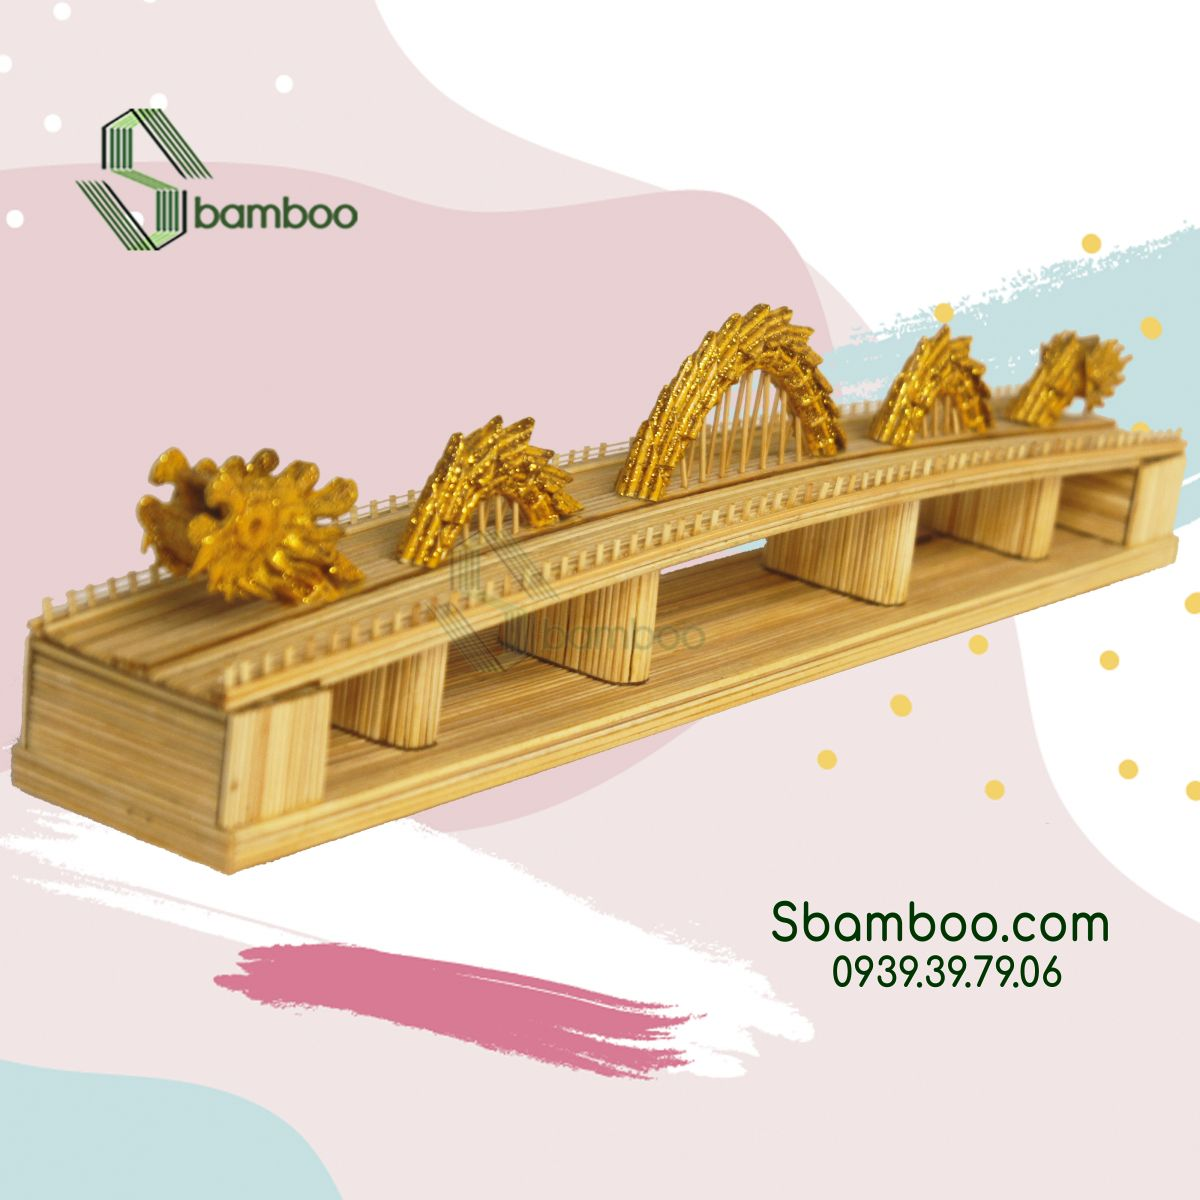 Dragon Bridge Model Sbamboo